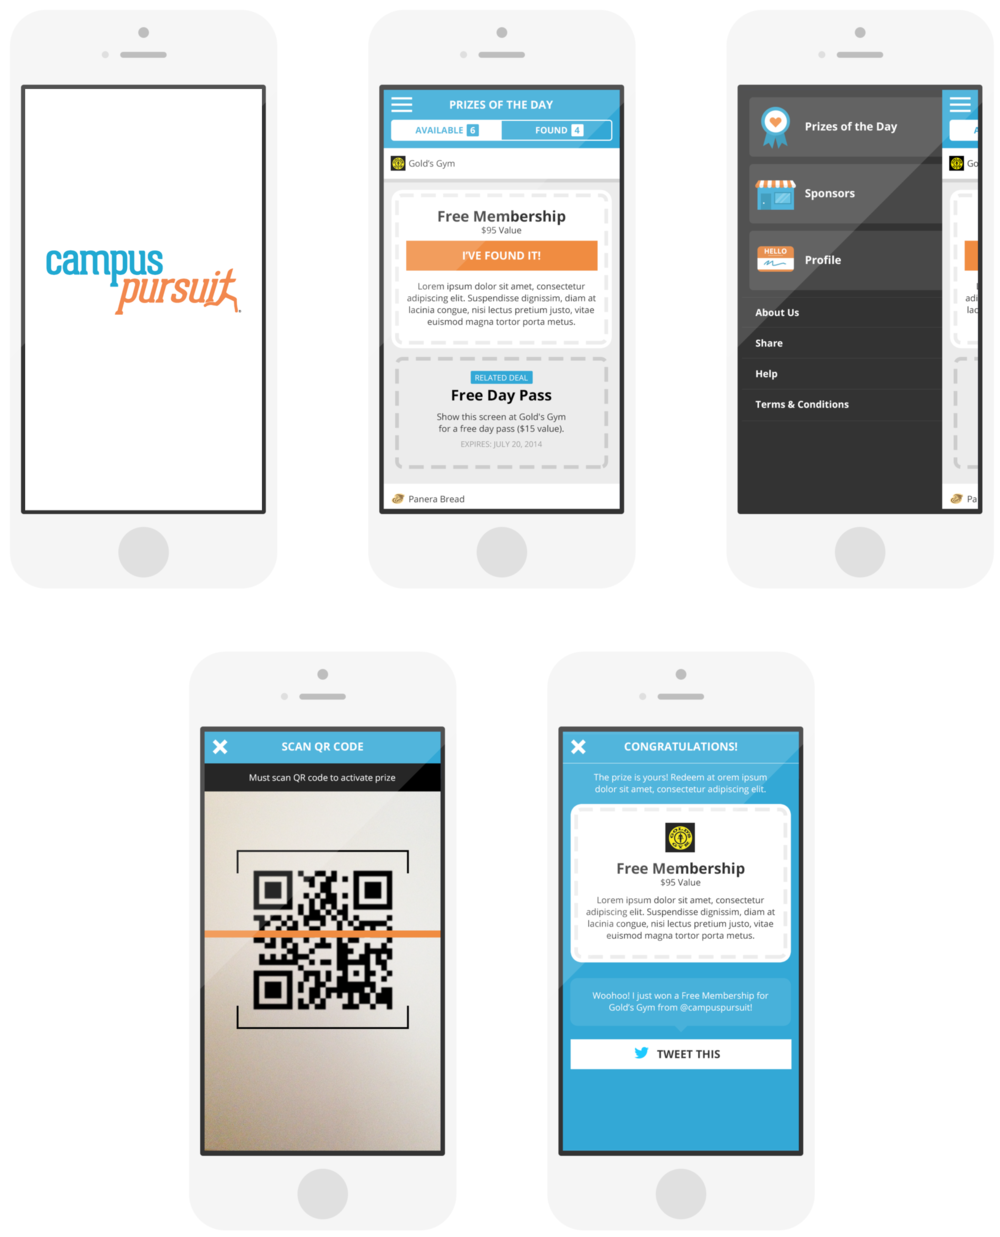 Campus Pursuit - I did the UX and UI for Campus Pursuit, which is a college-wide scavenger hunt program that engages college students with brands.